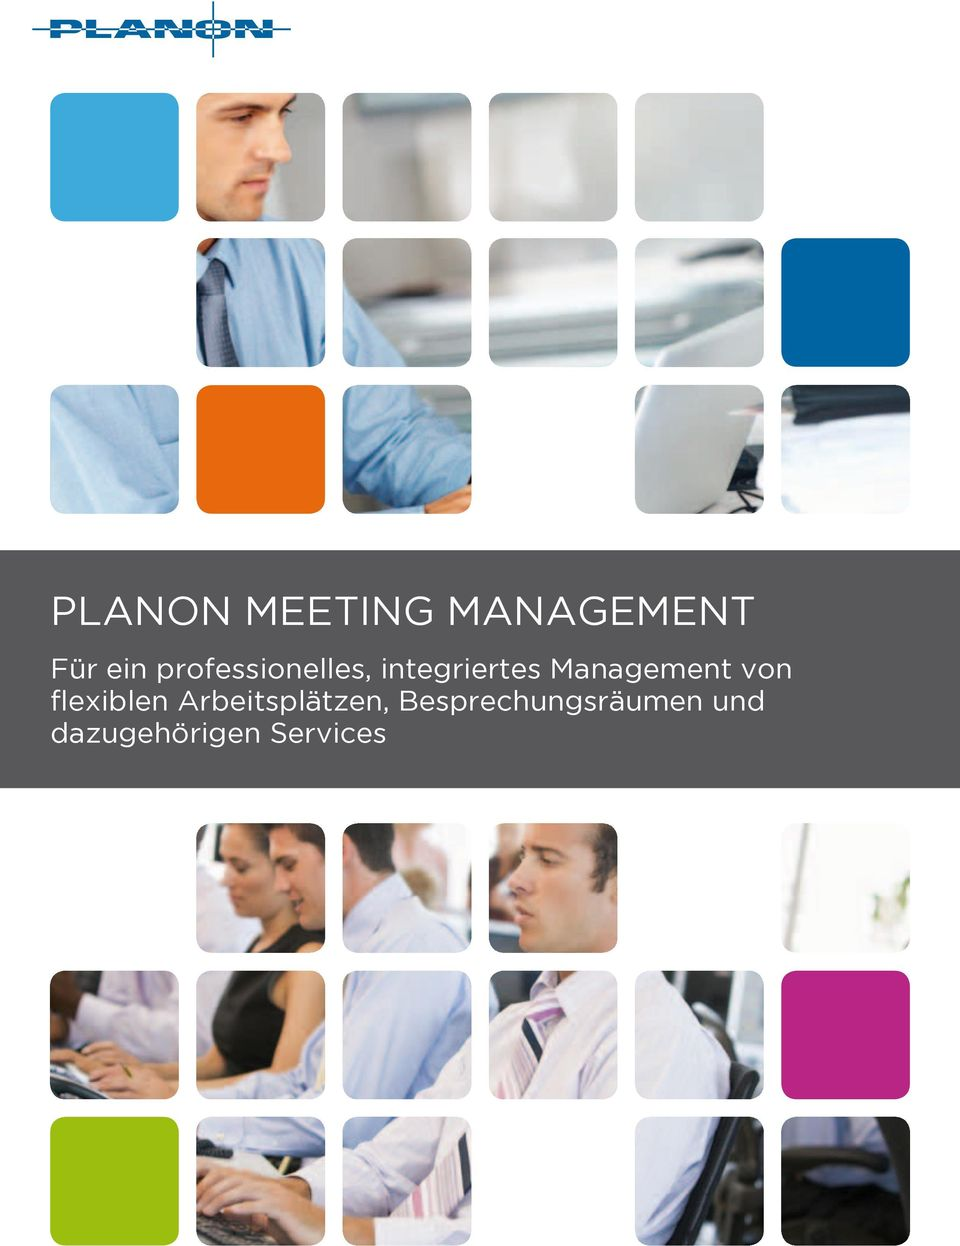 Management von flexiblen